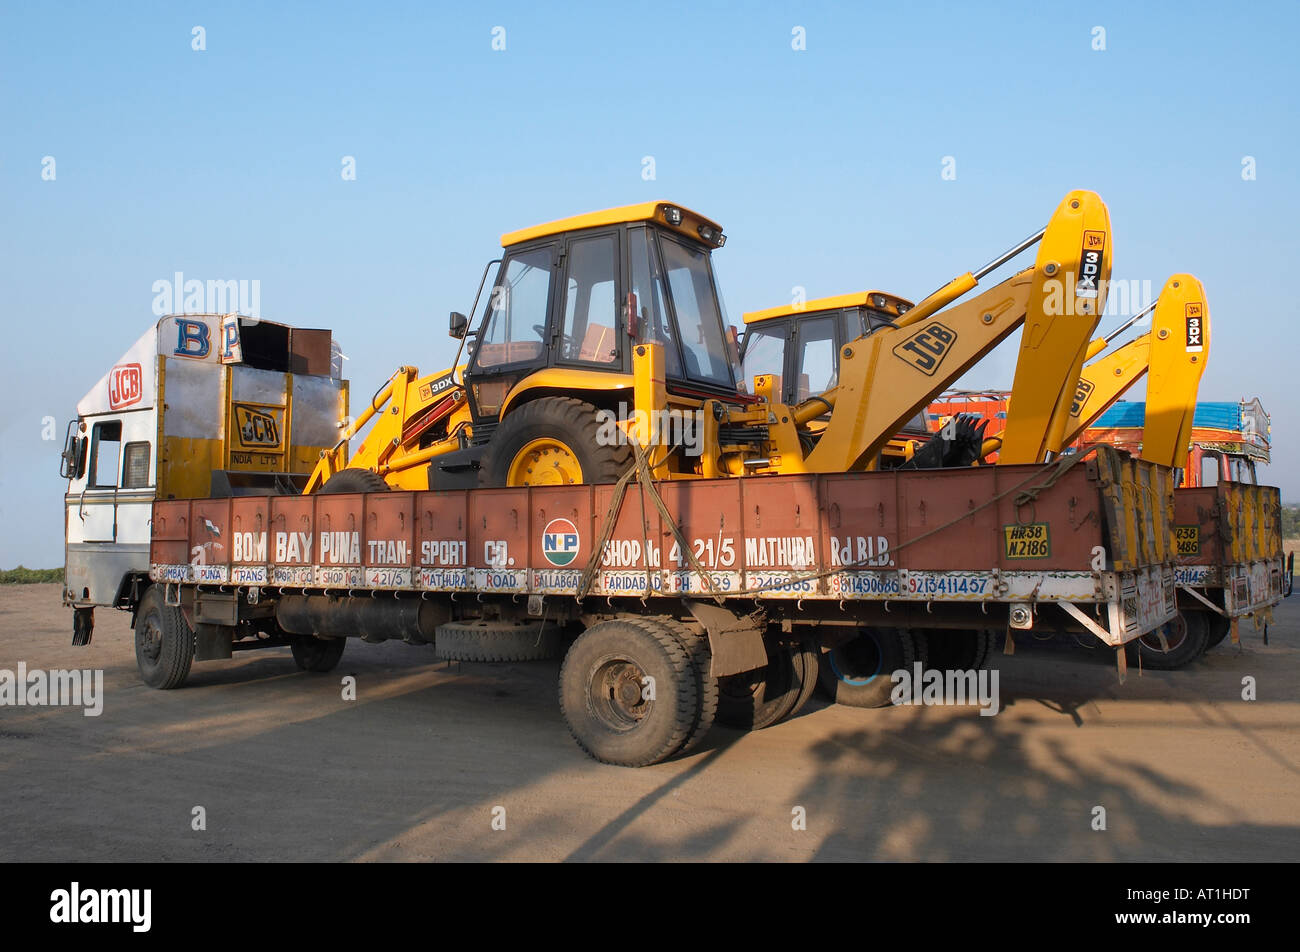 Earth Movers in Truck in morning light Maharashtra, India. - Stock Image